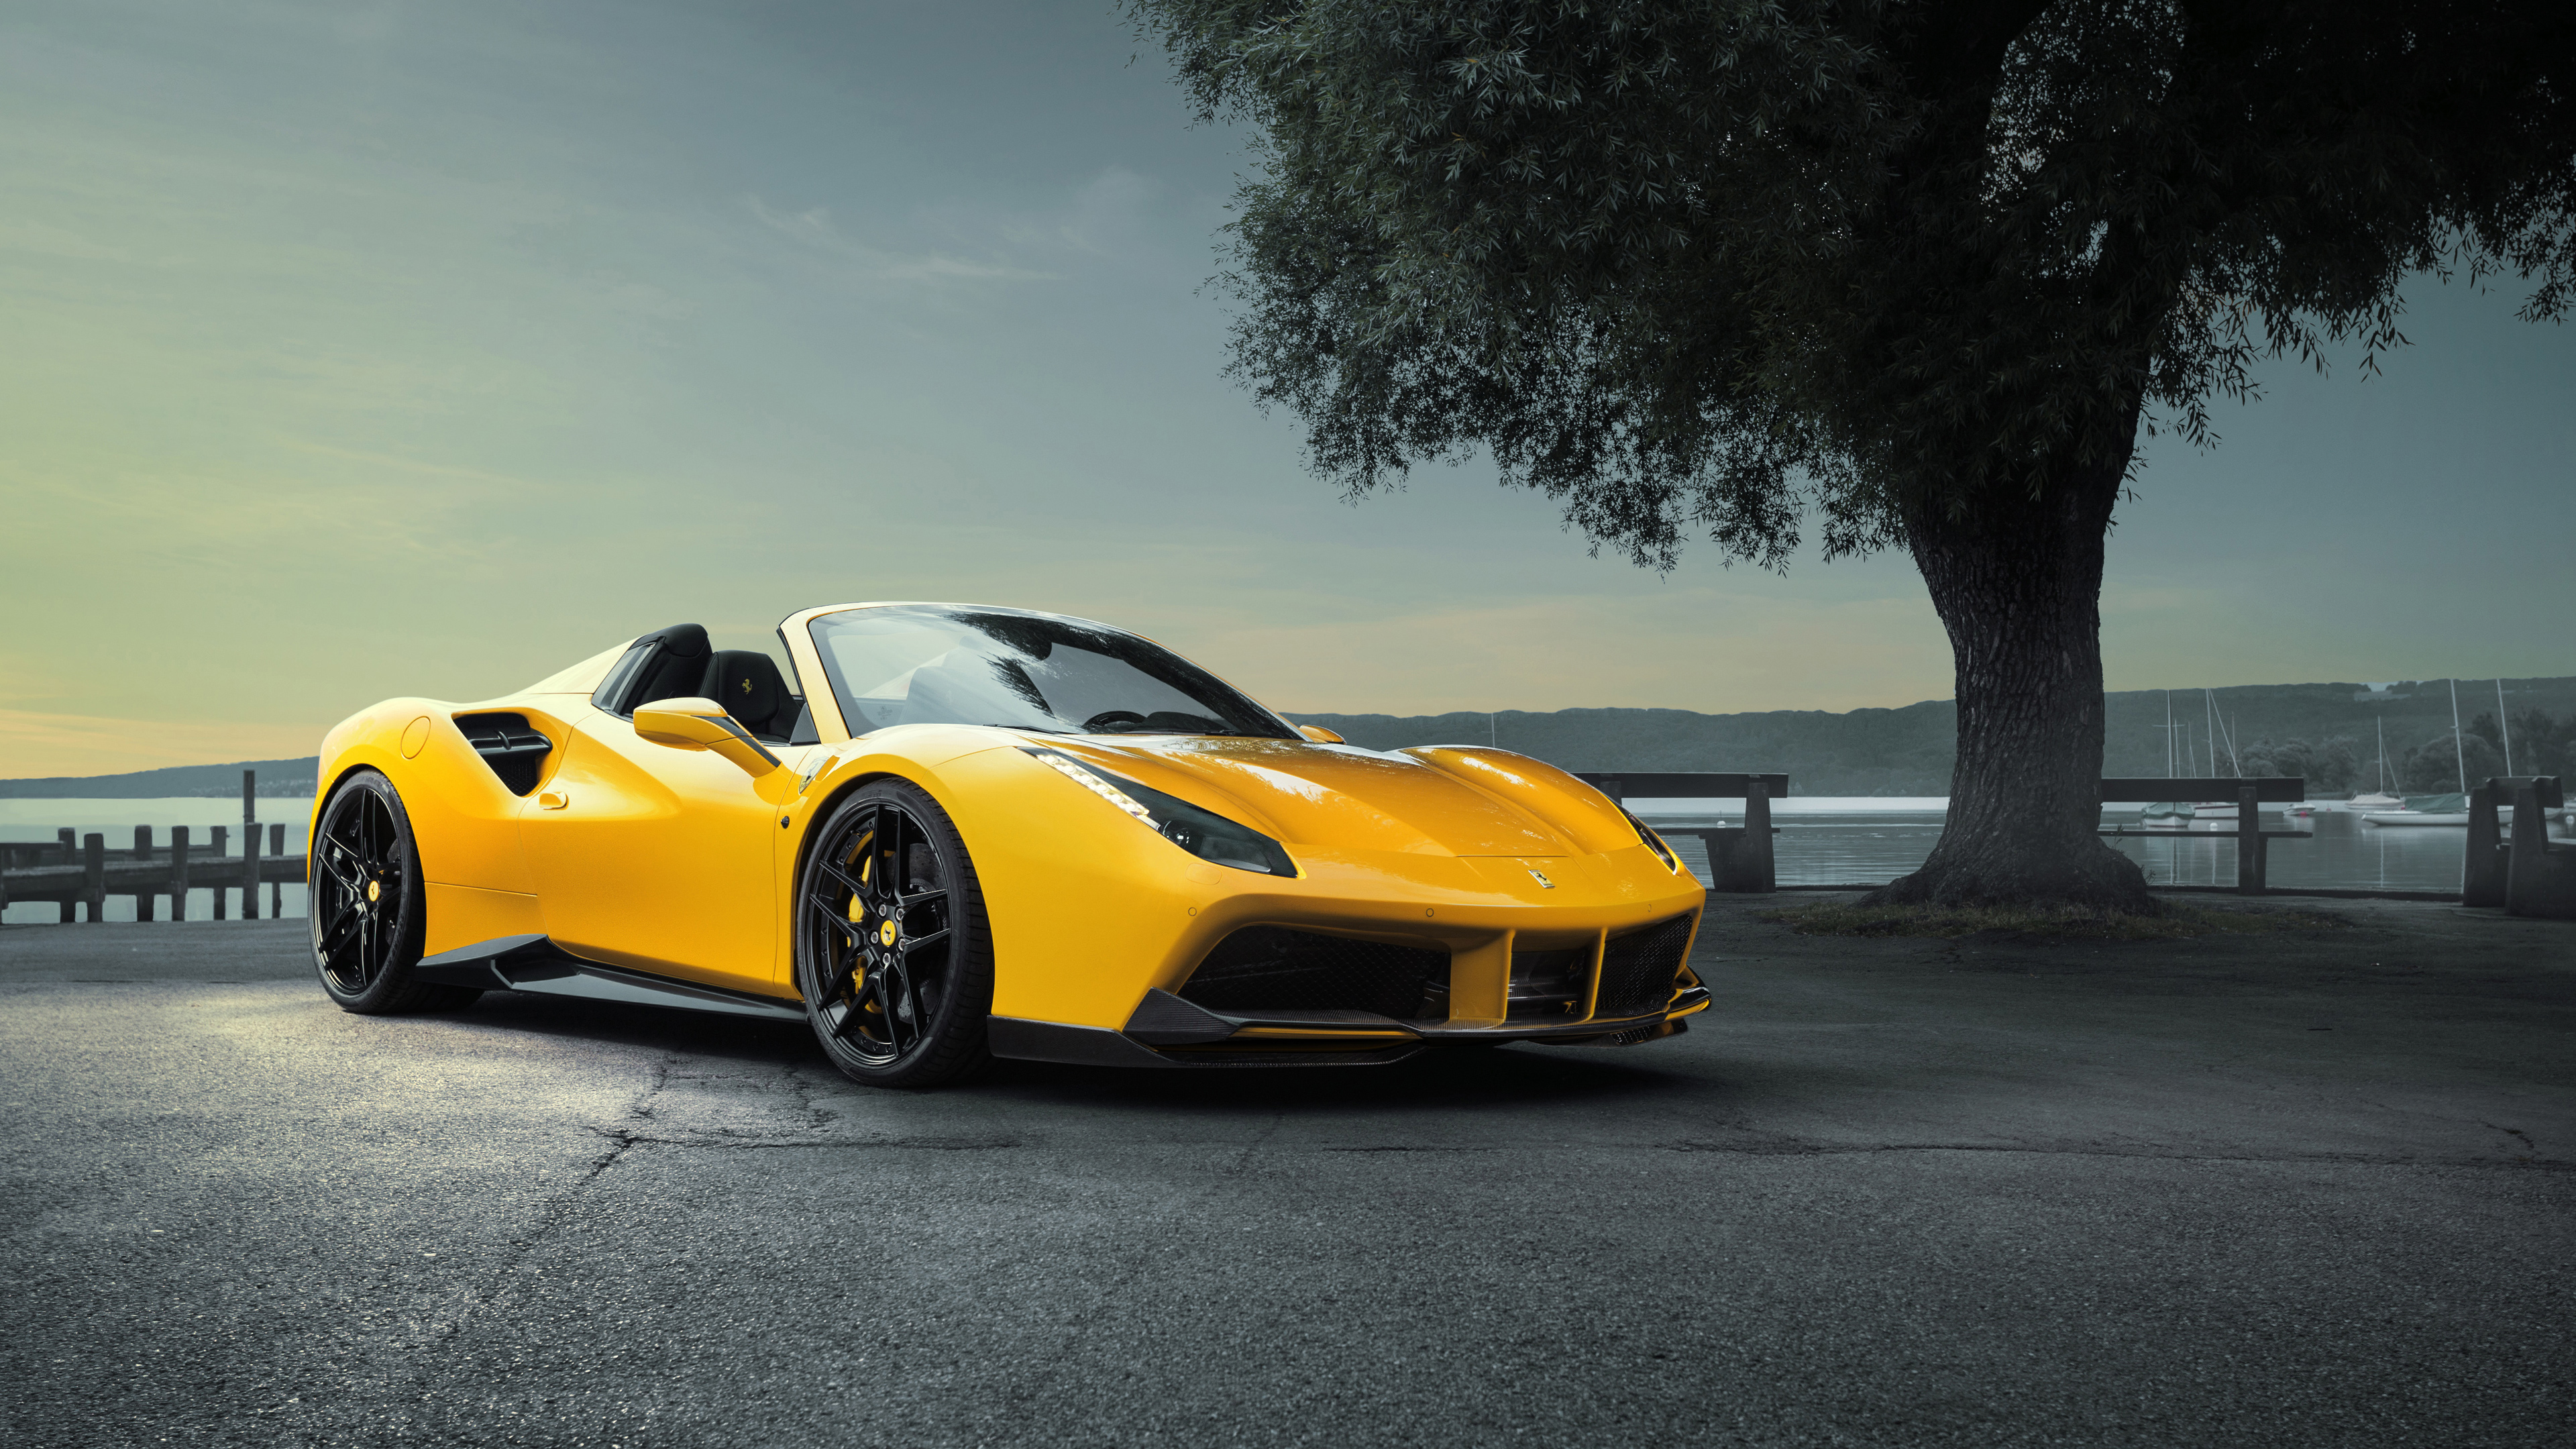 2016 Ferrari 488 Gts Novitec Rosso Wallpaper Hd Car